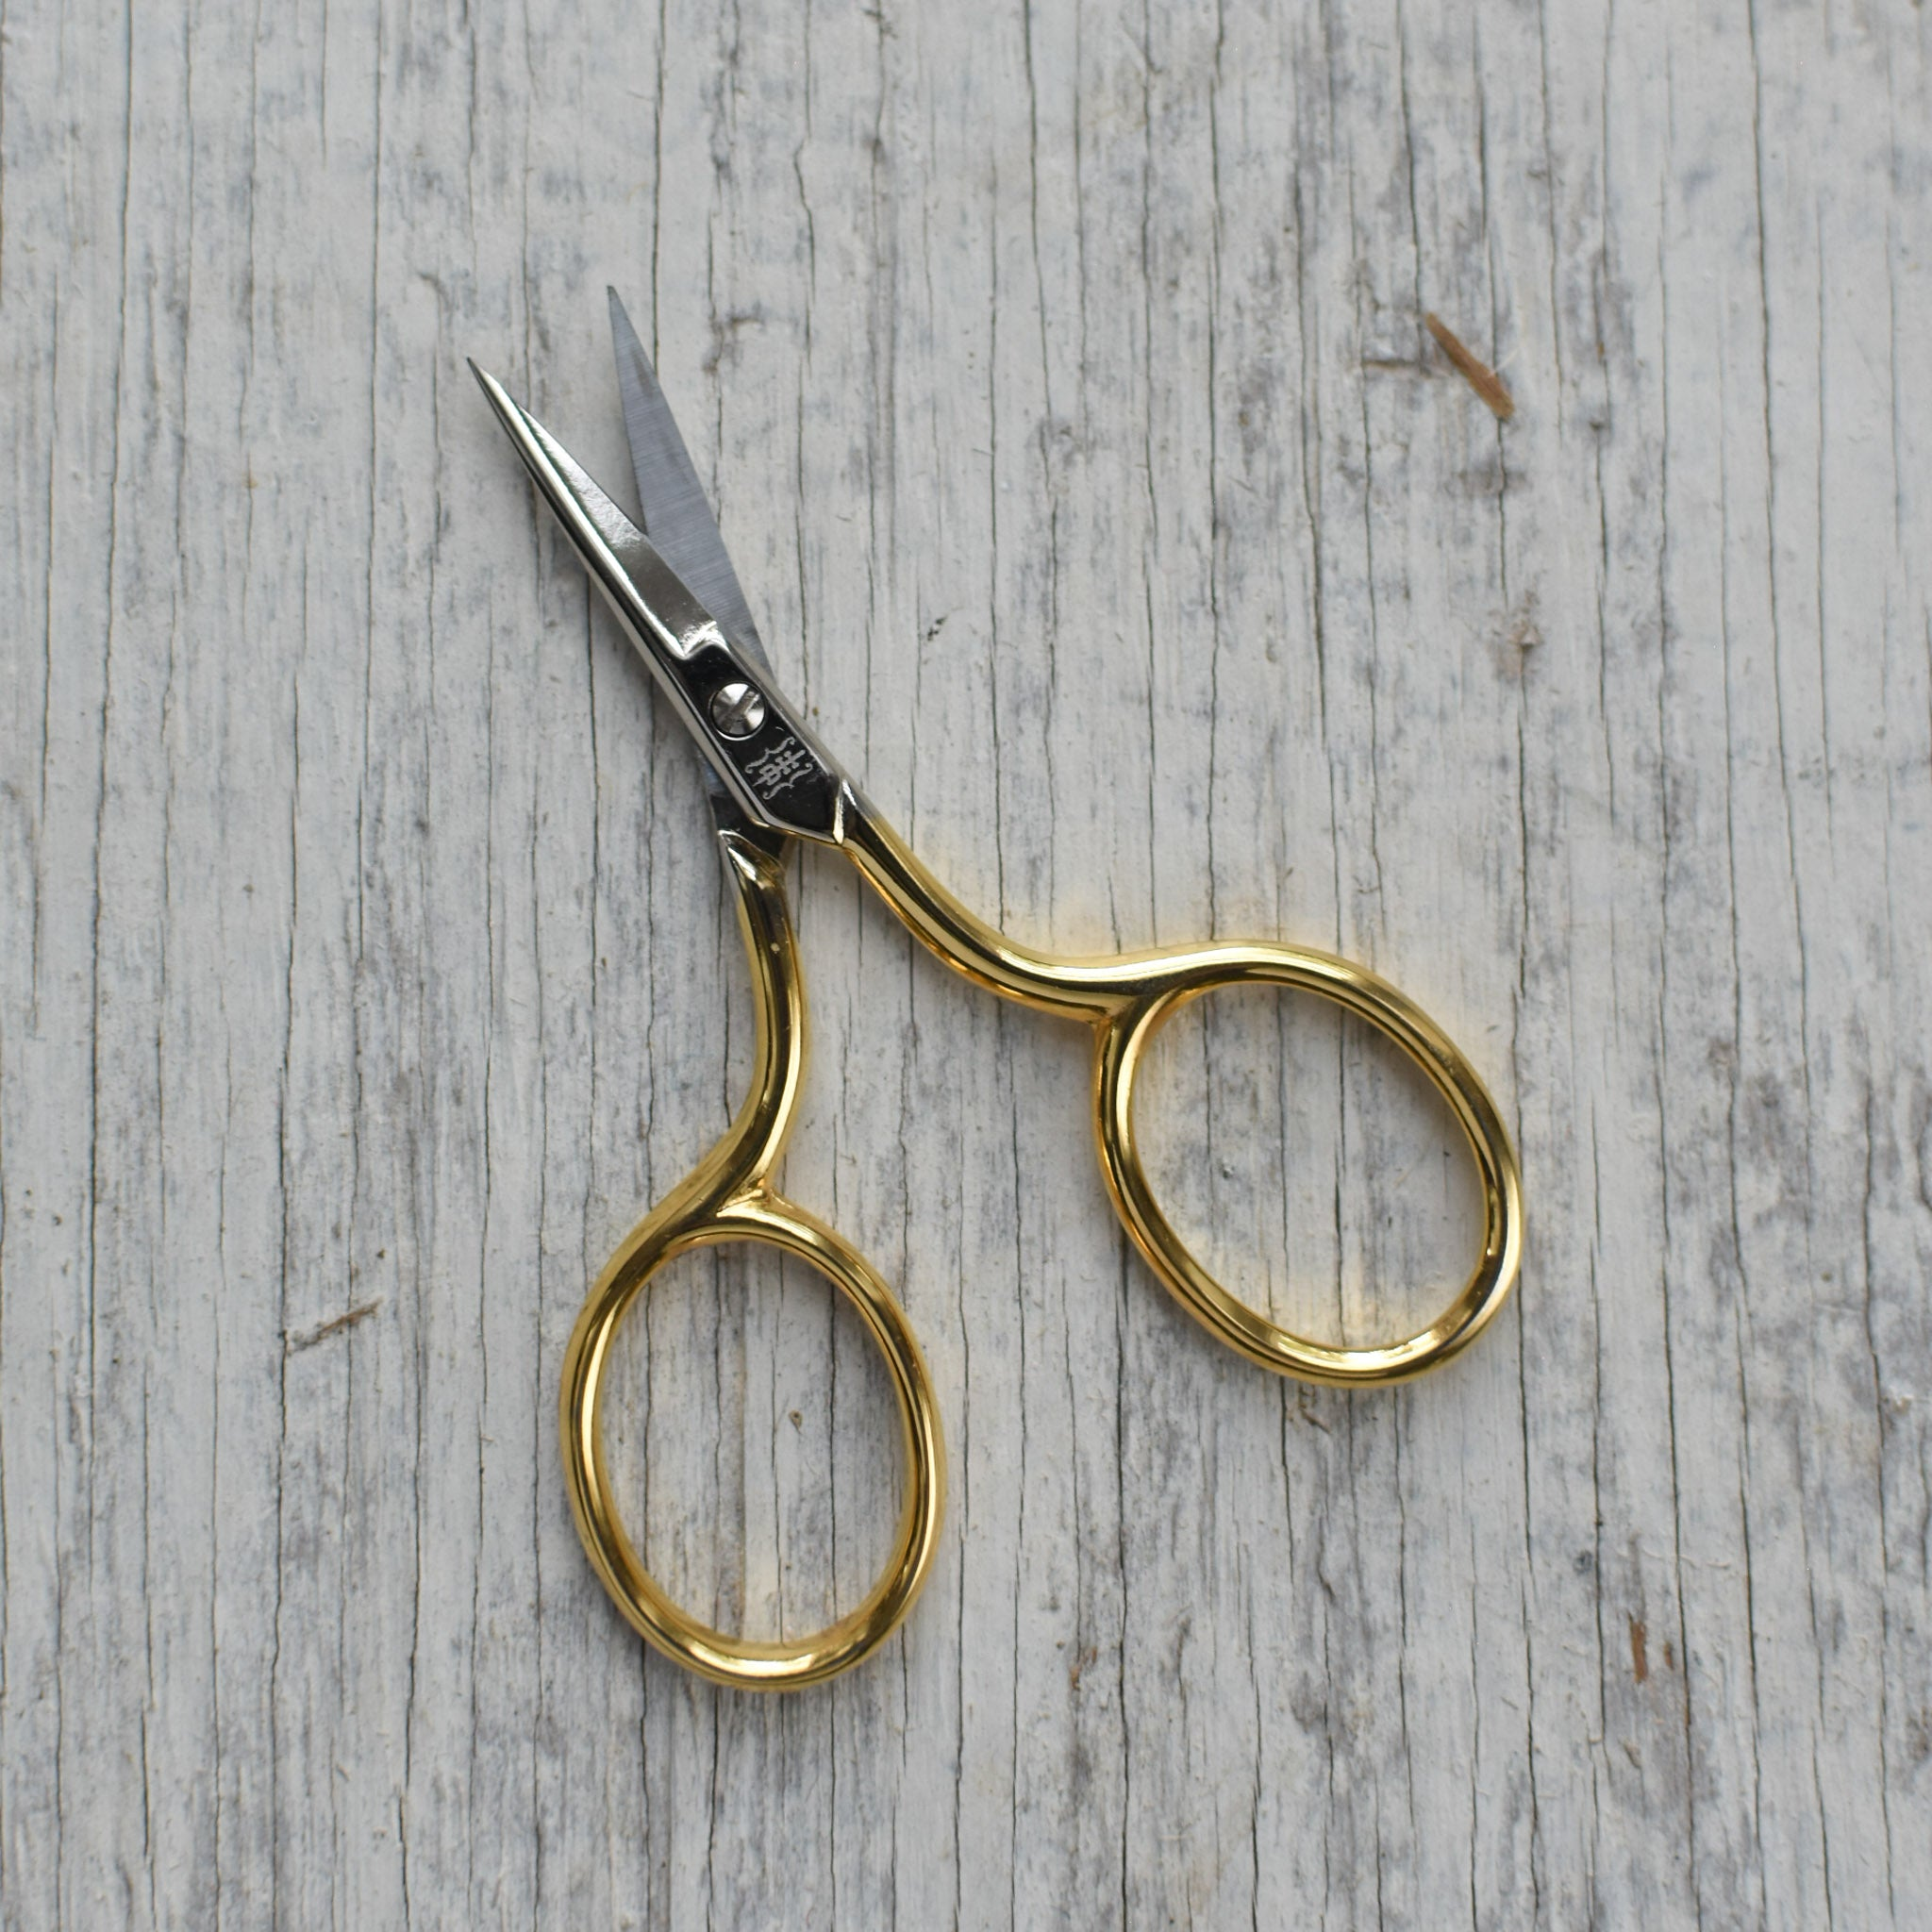 Small 24k Gold Scissors